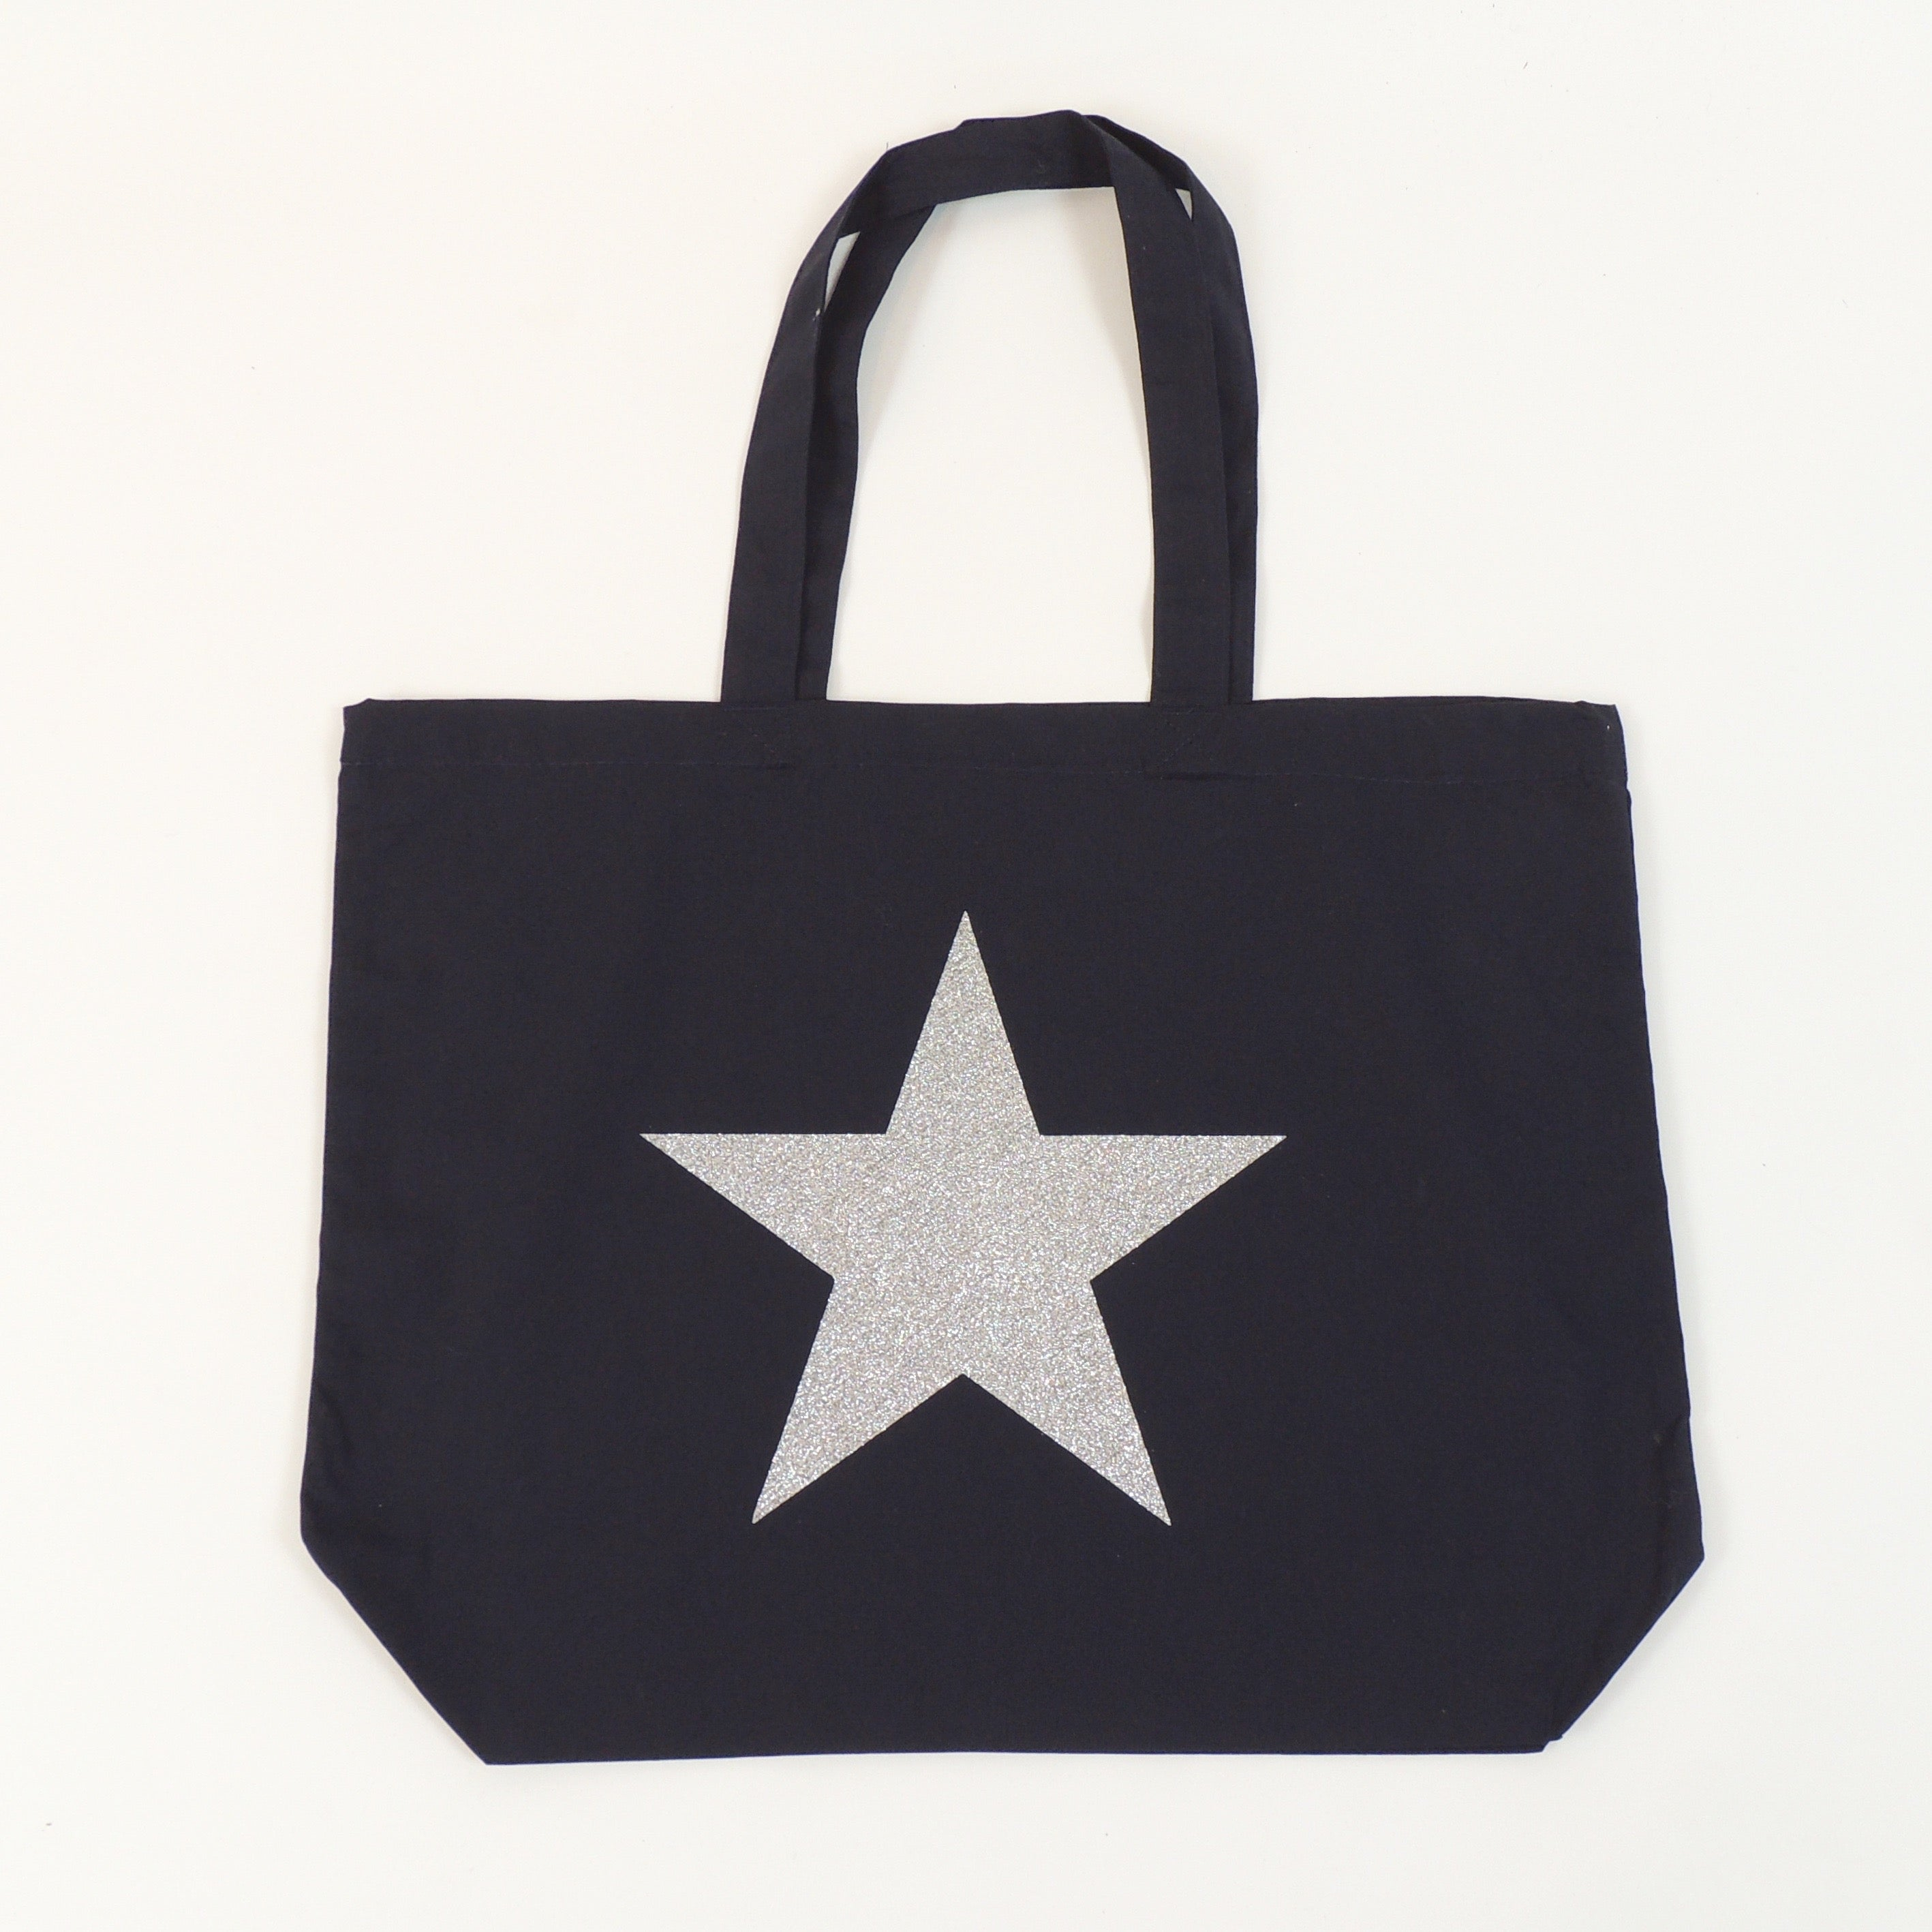 STAR TOTE